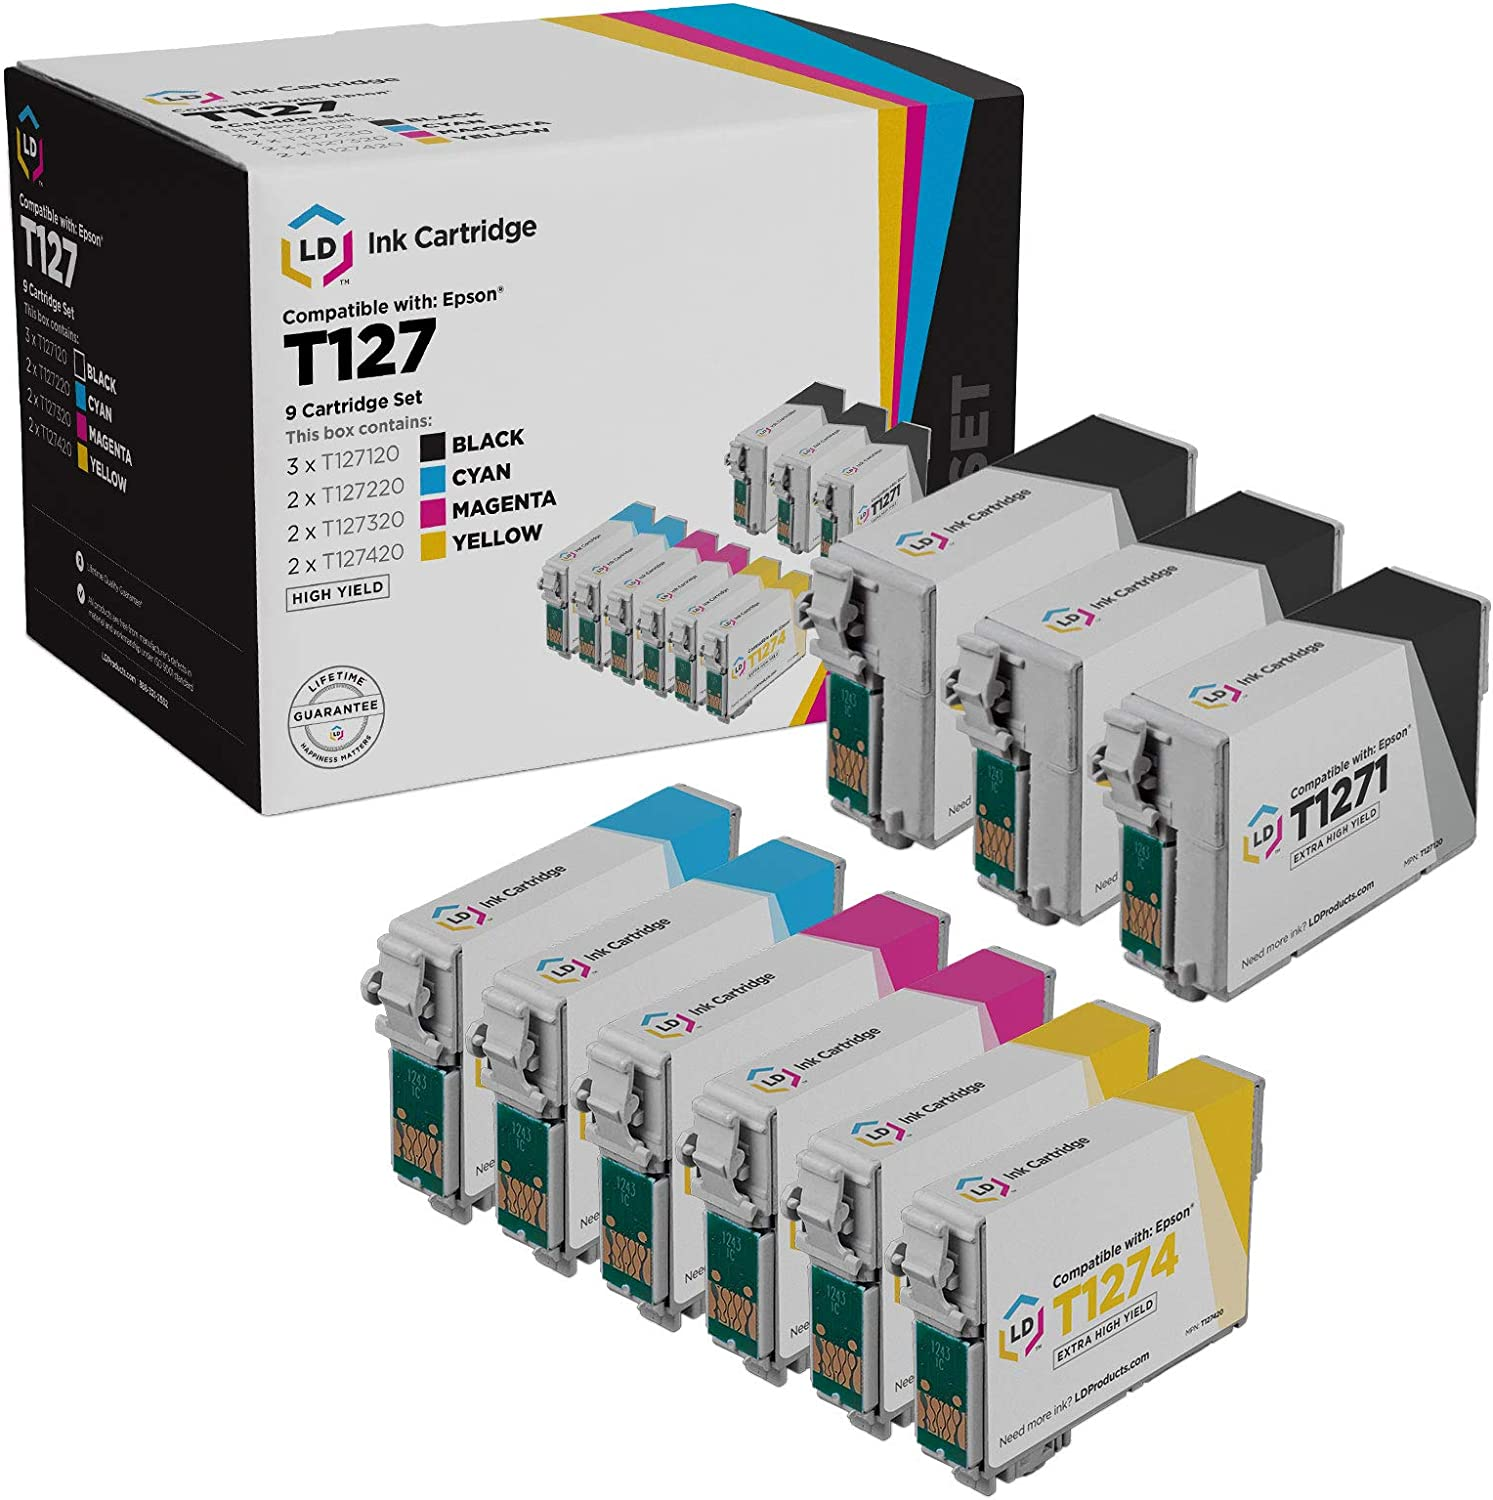 LD Remanufactured Ink Cartridge Replacement for Epson 127 Extra High Yield (3 Black, 2 Cyan, 2 Magenta, 2 Yellow, 9-Pack)